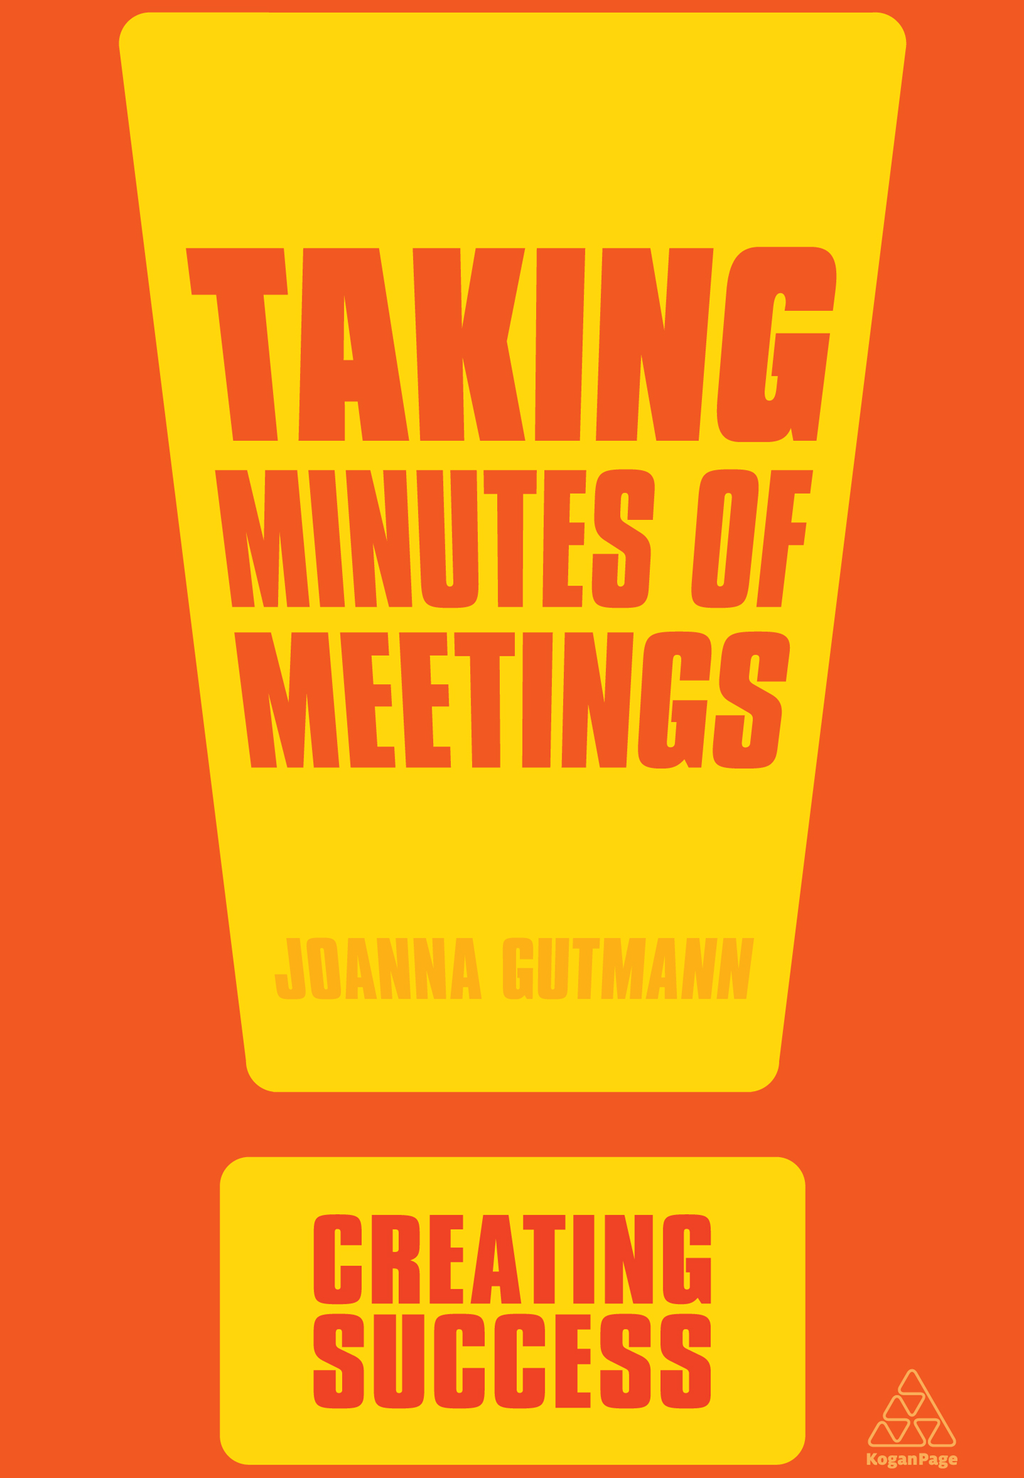 Taking Minutes of Meetings By: Joanna Gutmann